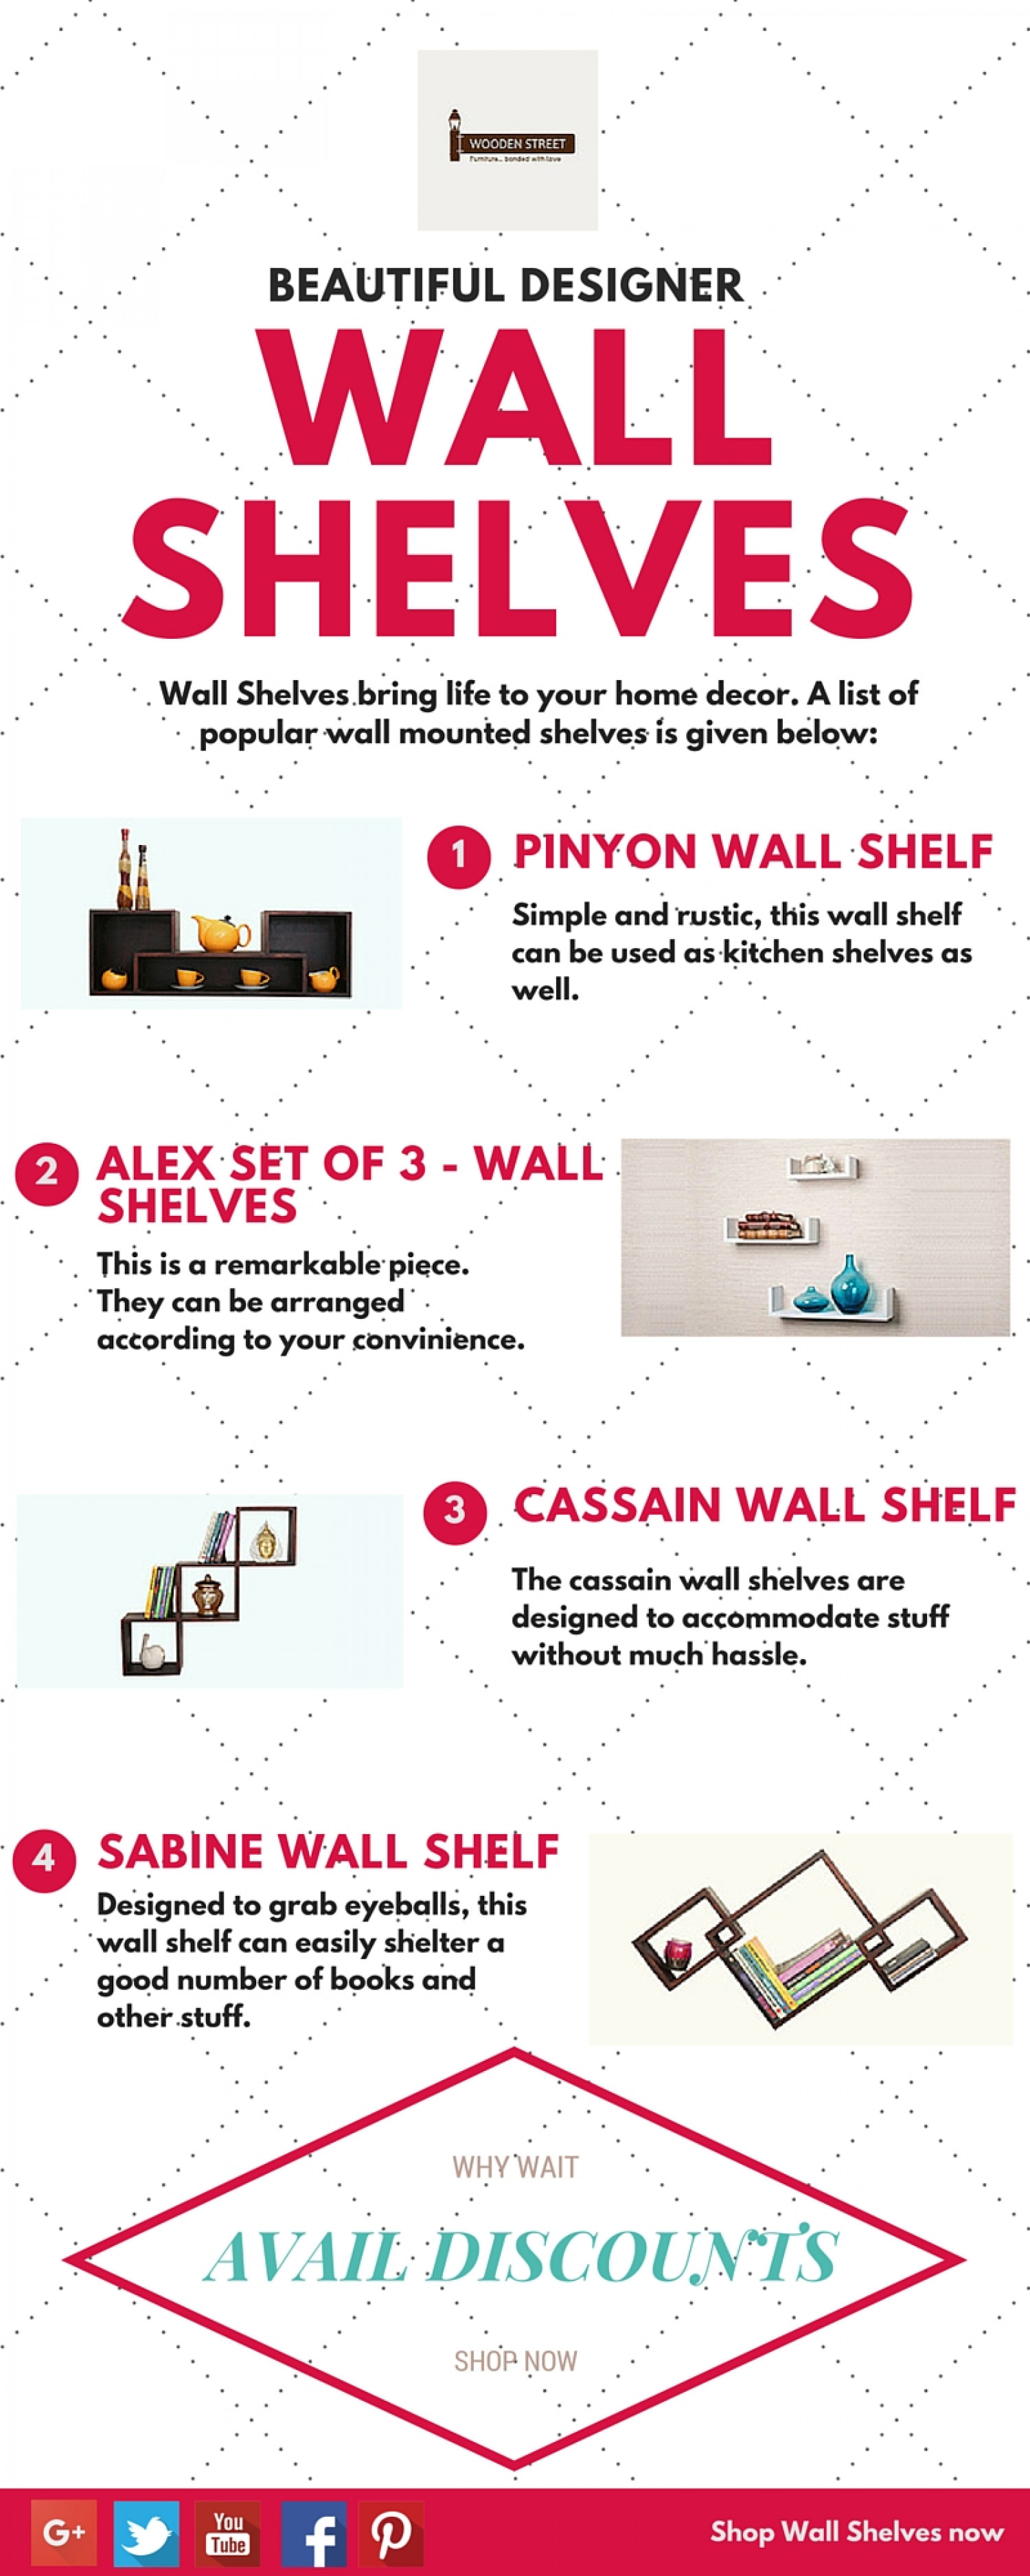 Wall Shelves Online India - WoodenStreet Infographic